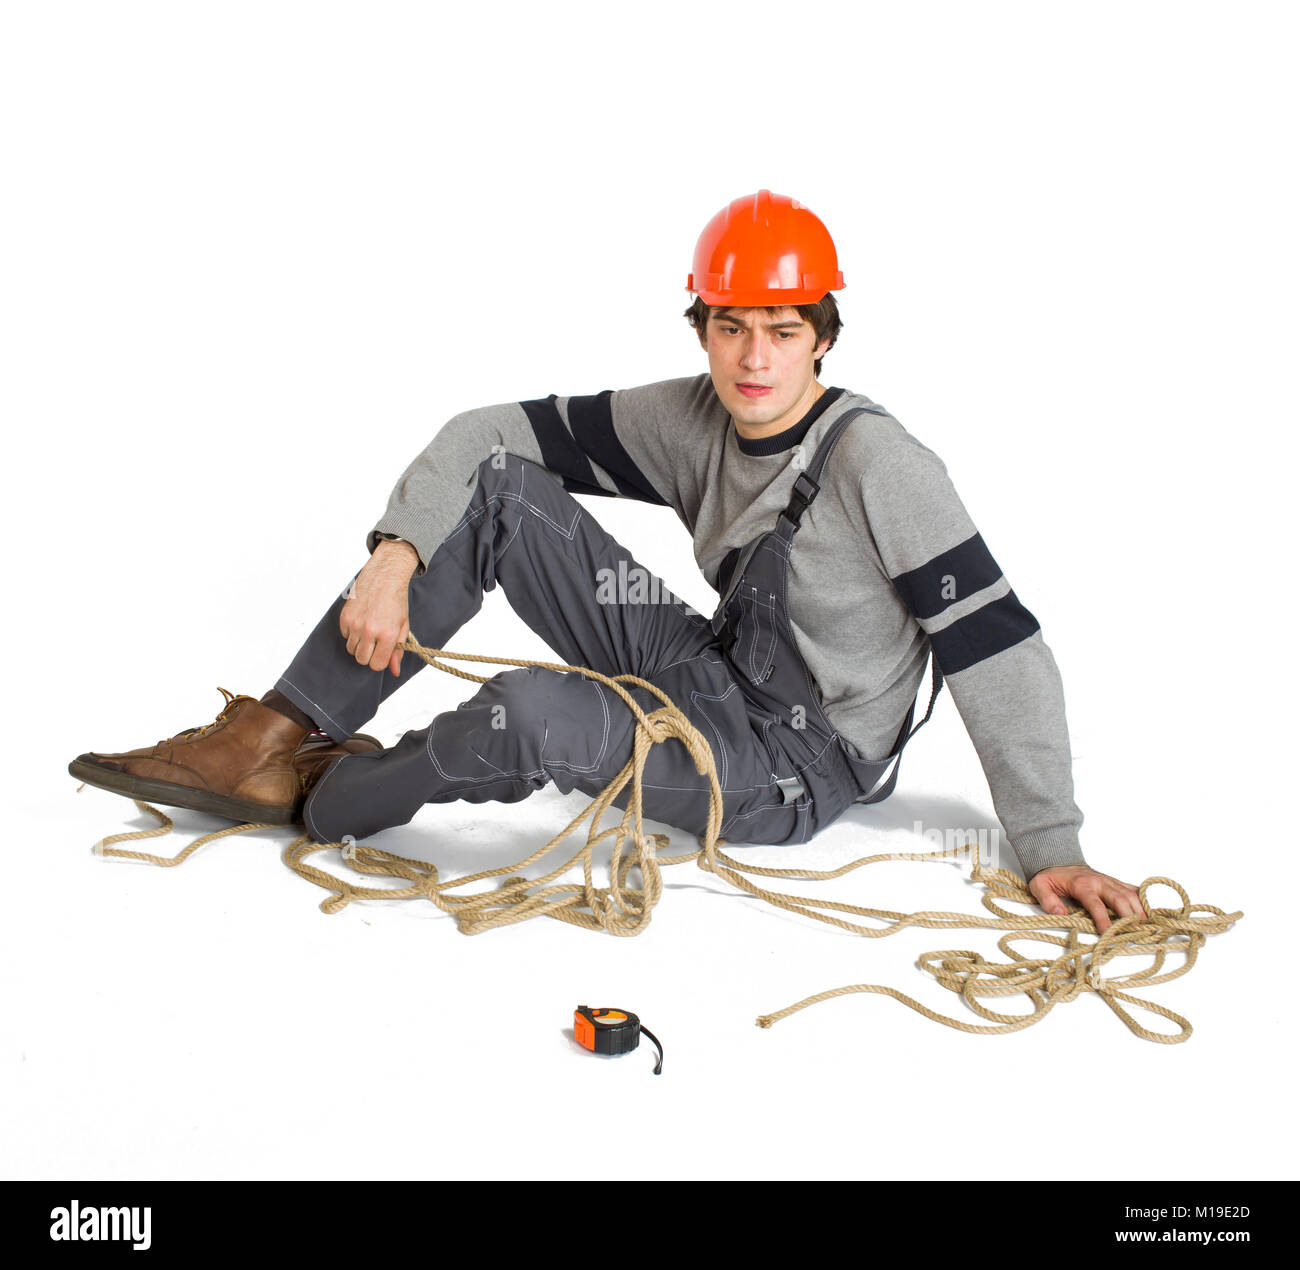 A young worker in grey uniform tied up with rope on white isolated background. Stock Photo